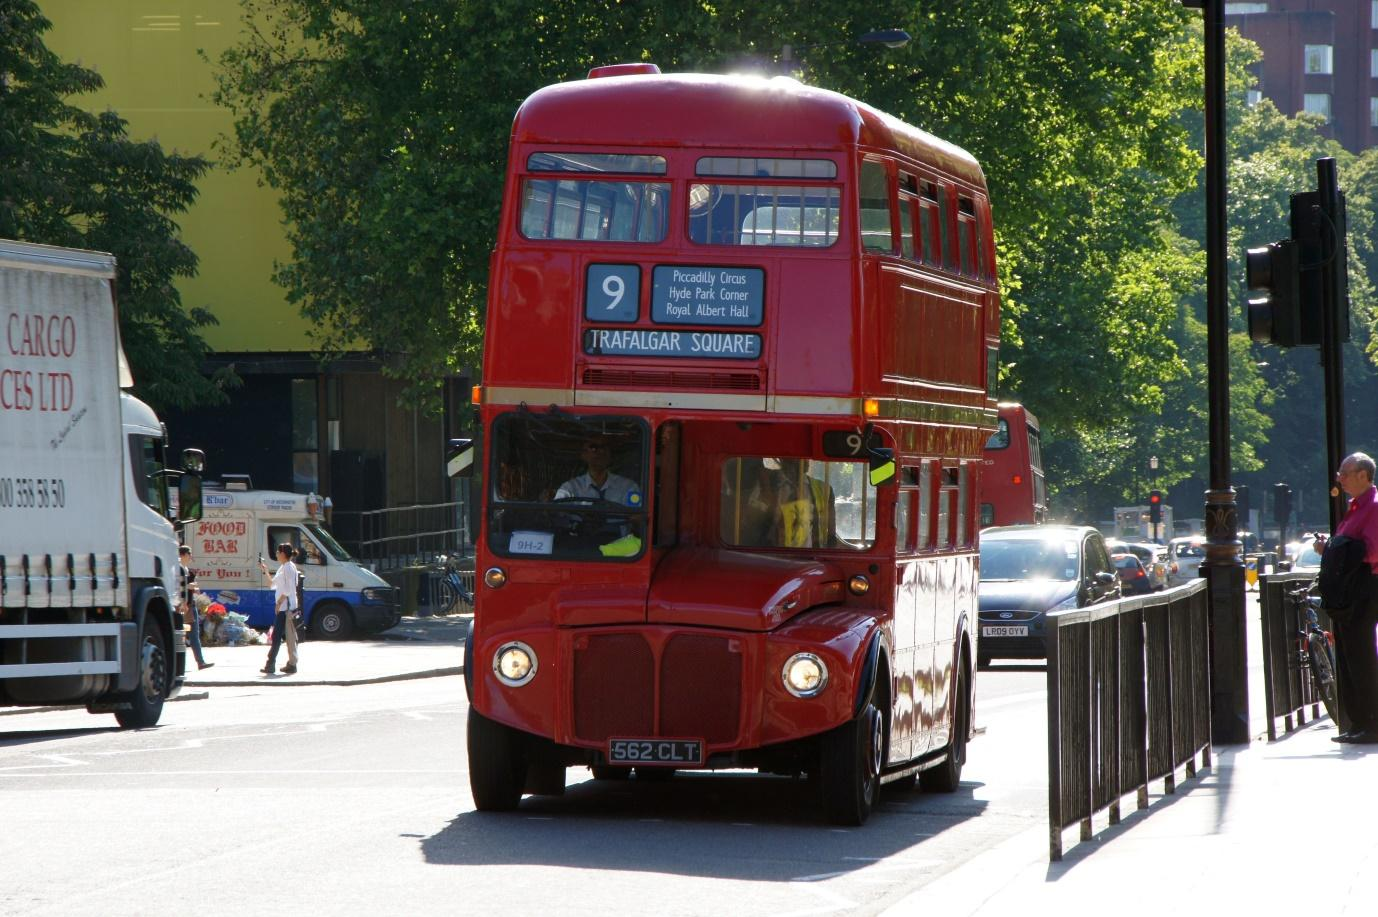 An old Routemaster | ©Chris Sampson/WikiCommons